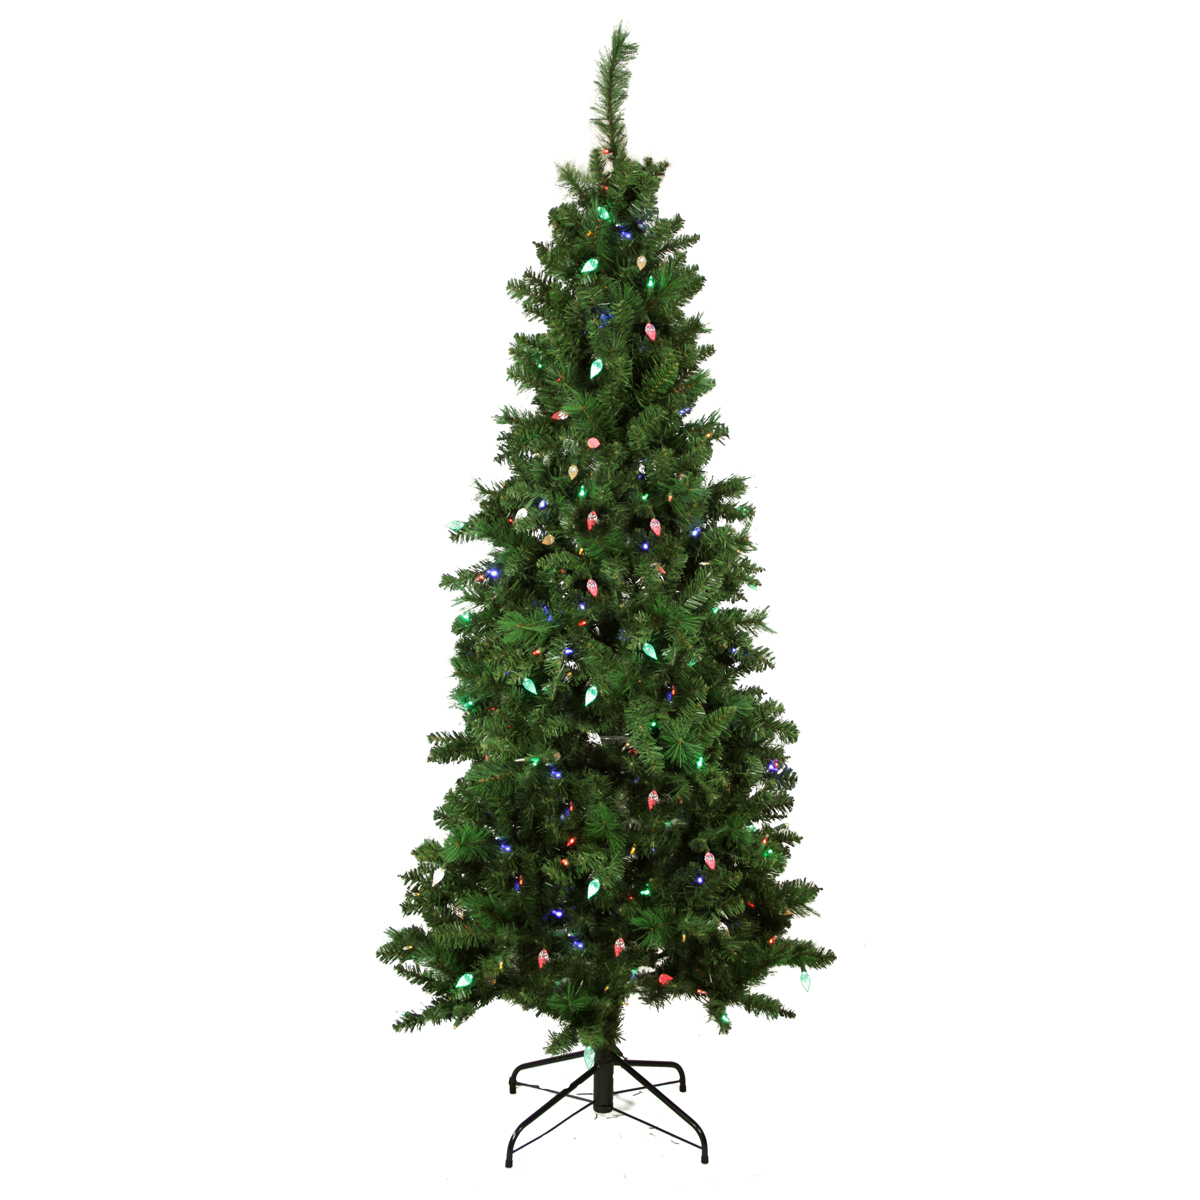 7 ft prelit single plug slim mixed long needle pine artificial christmas tree - Prelit Christmas Tree